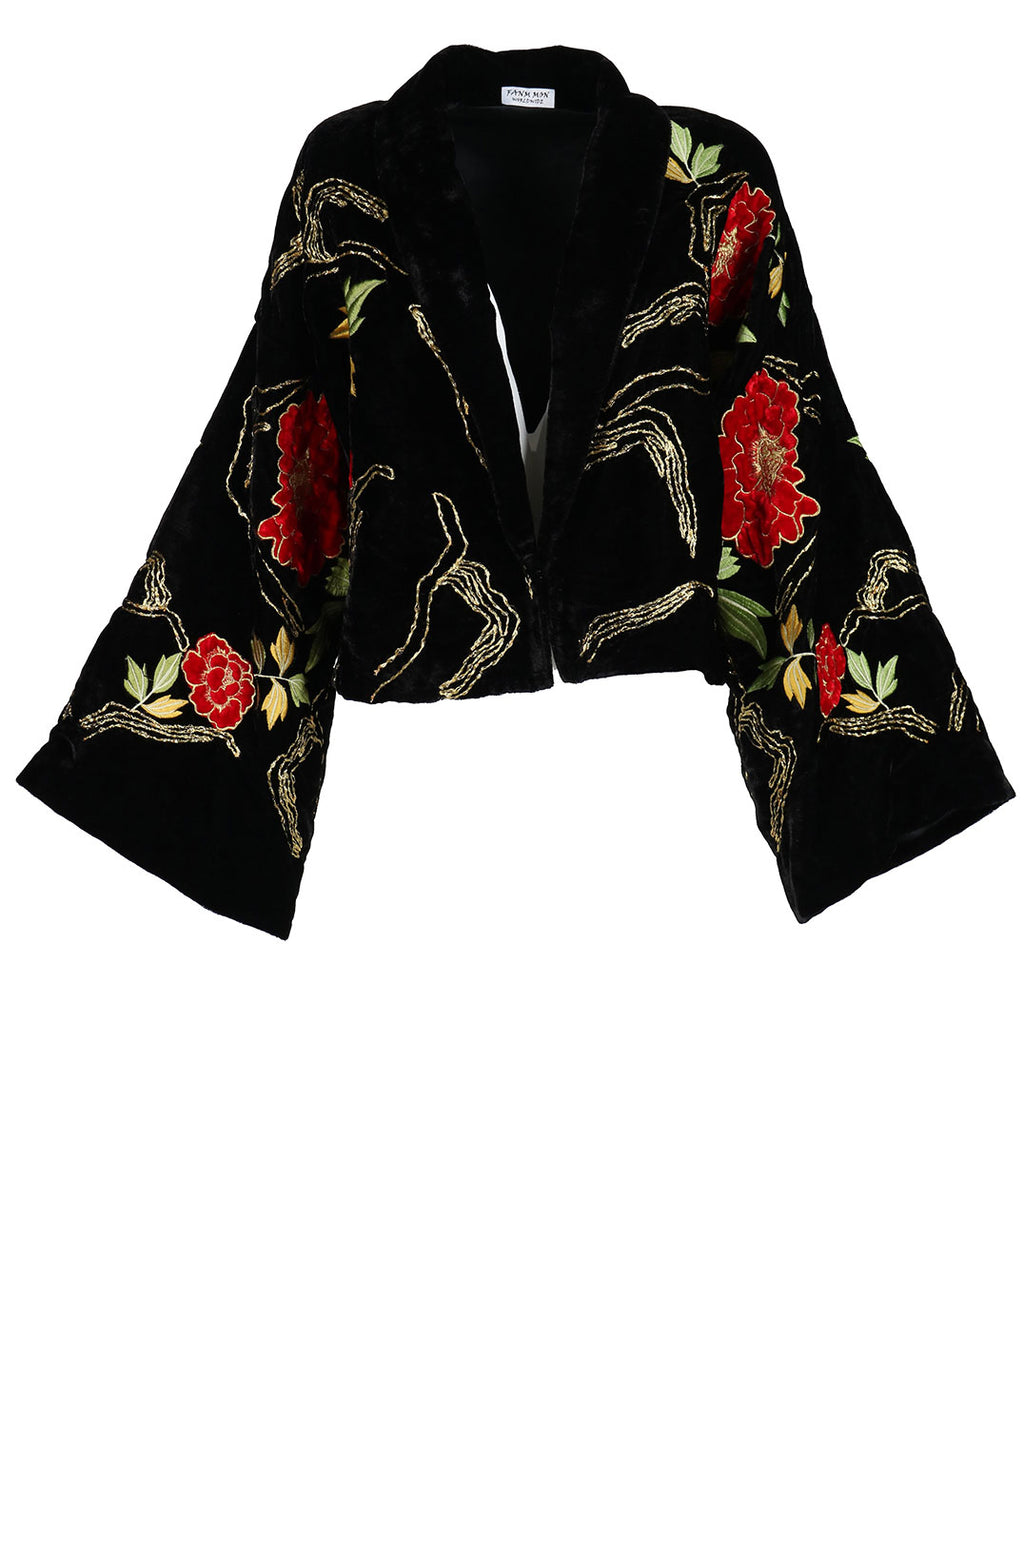 Fanm Mon DORE Vyshyvanka Black Velvet Jacket Dress Embroidered Multi Floral Color Jacket